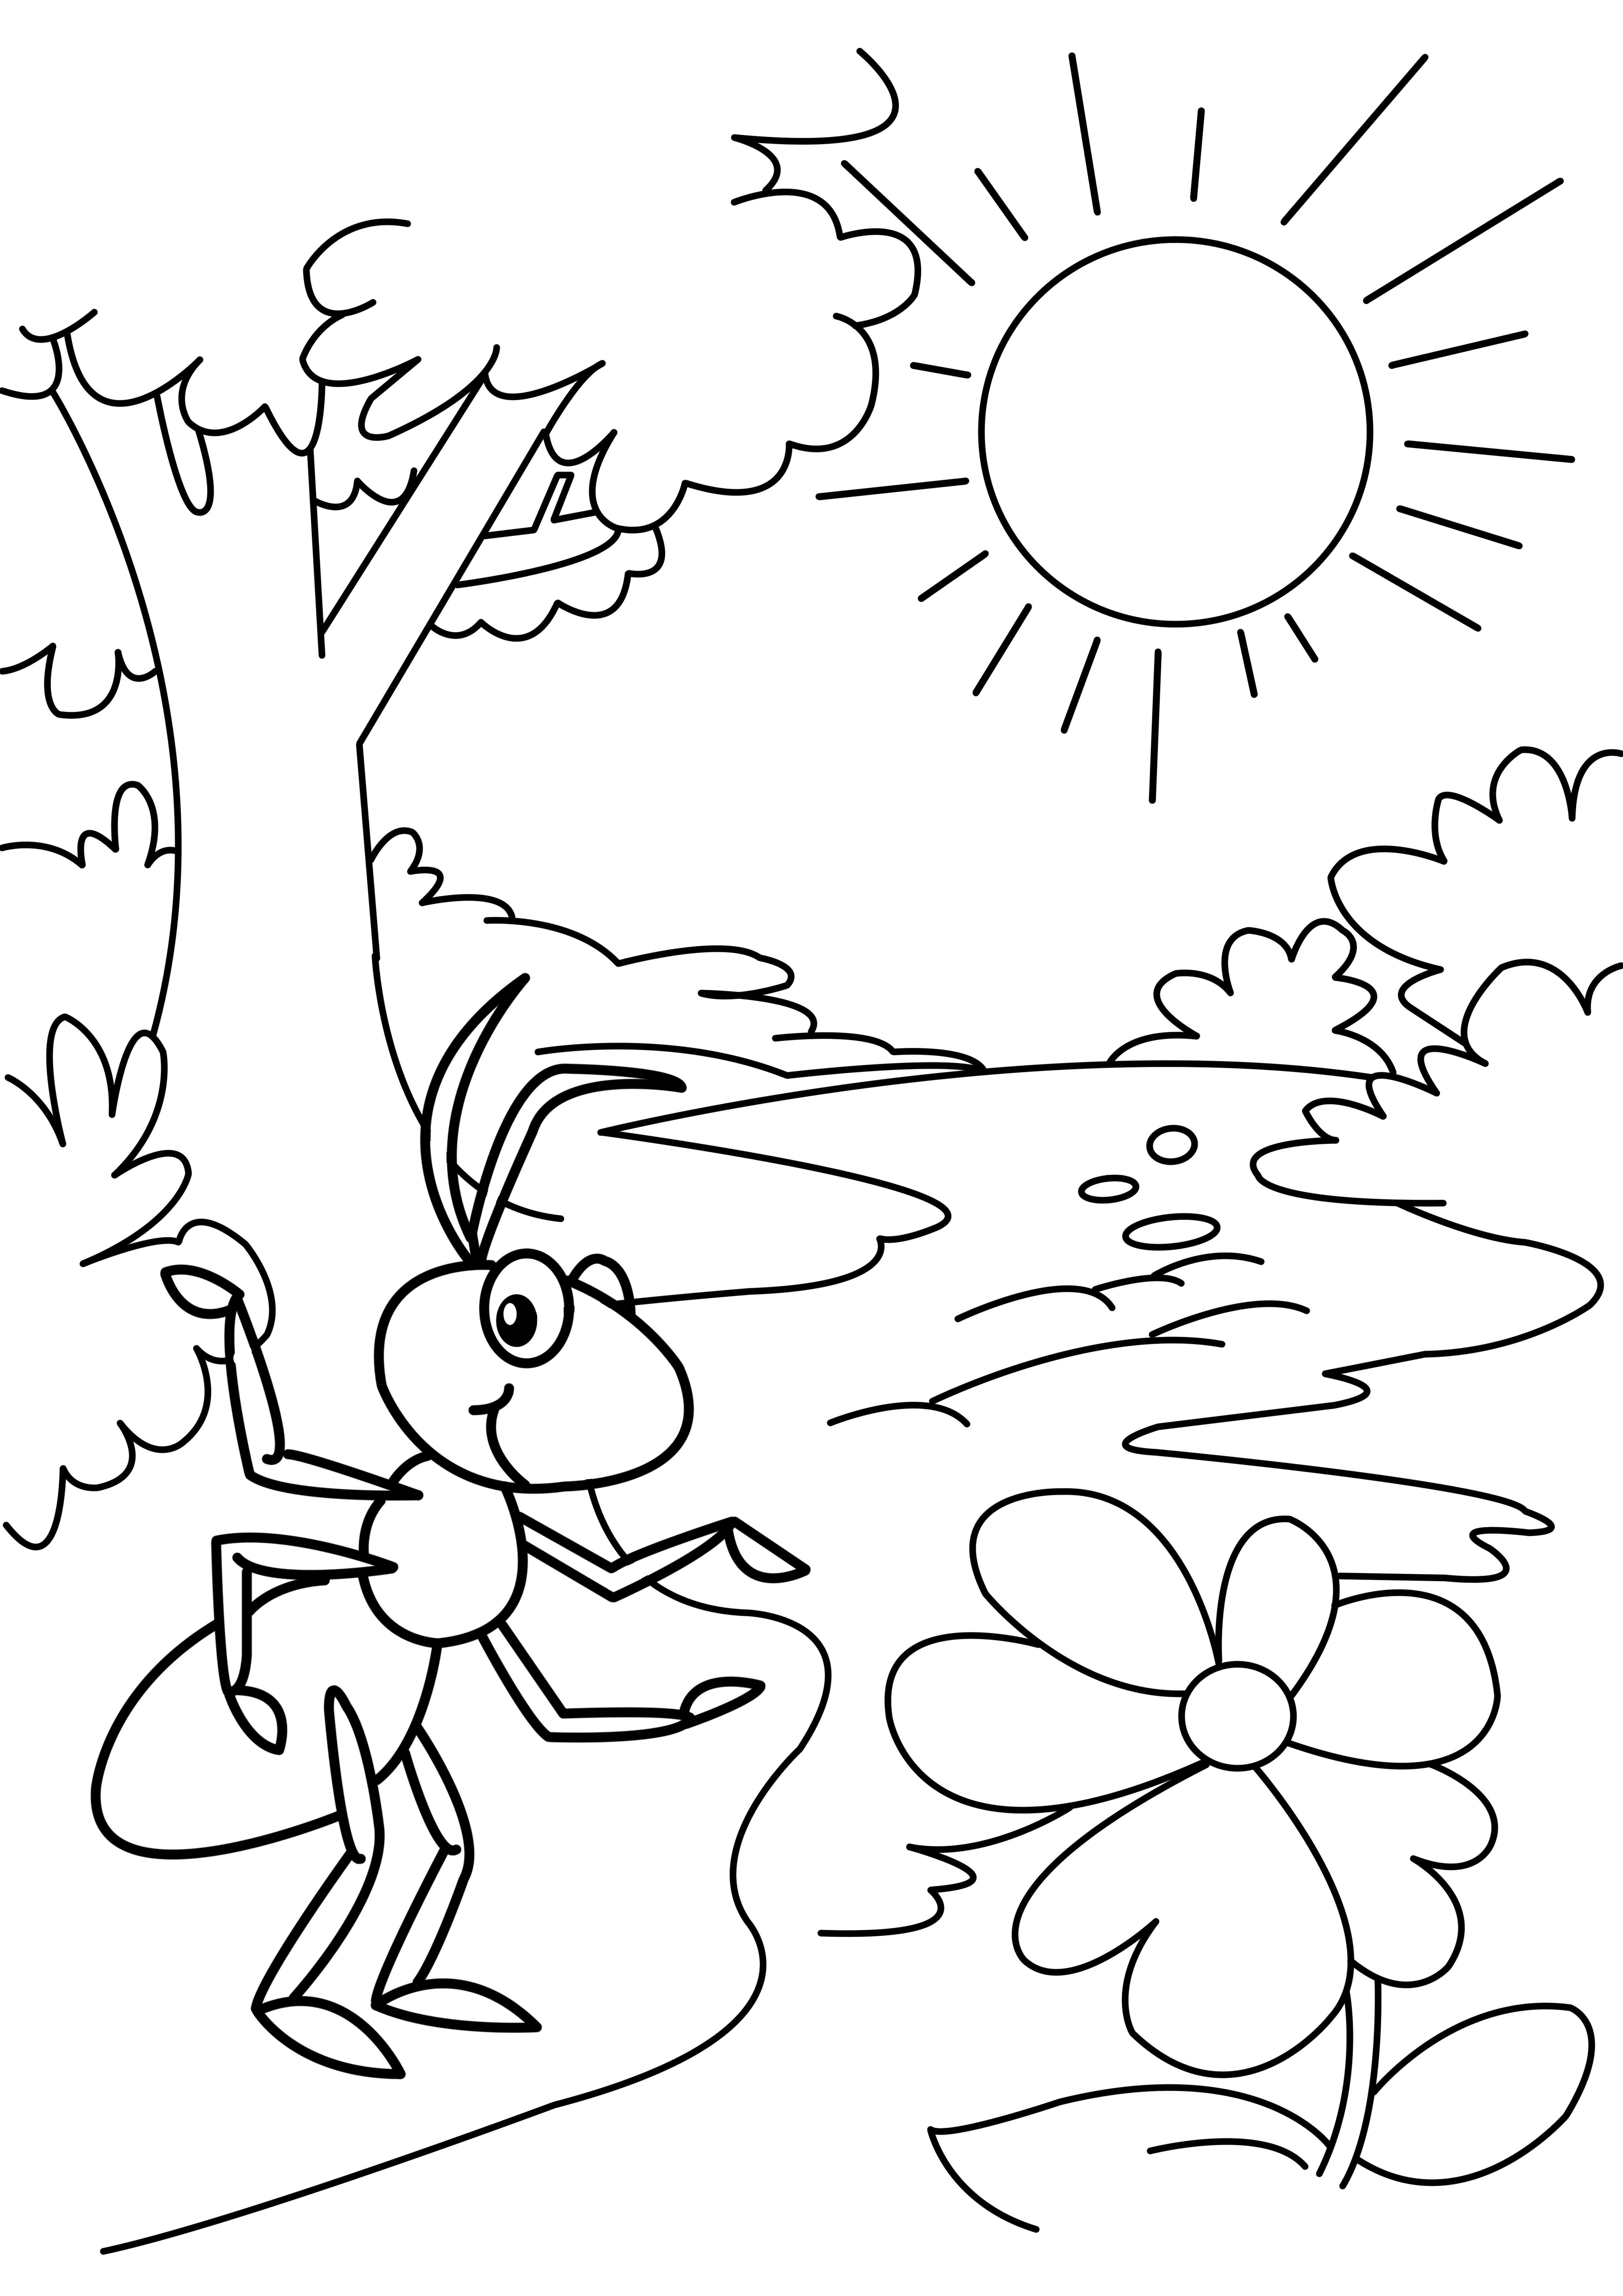 Drawings For Activity Booklet